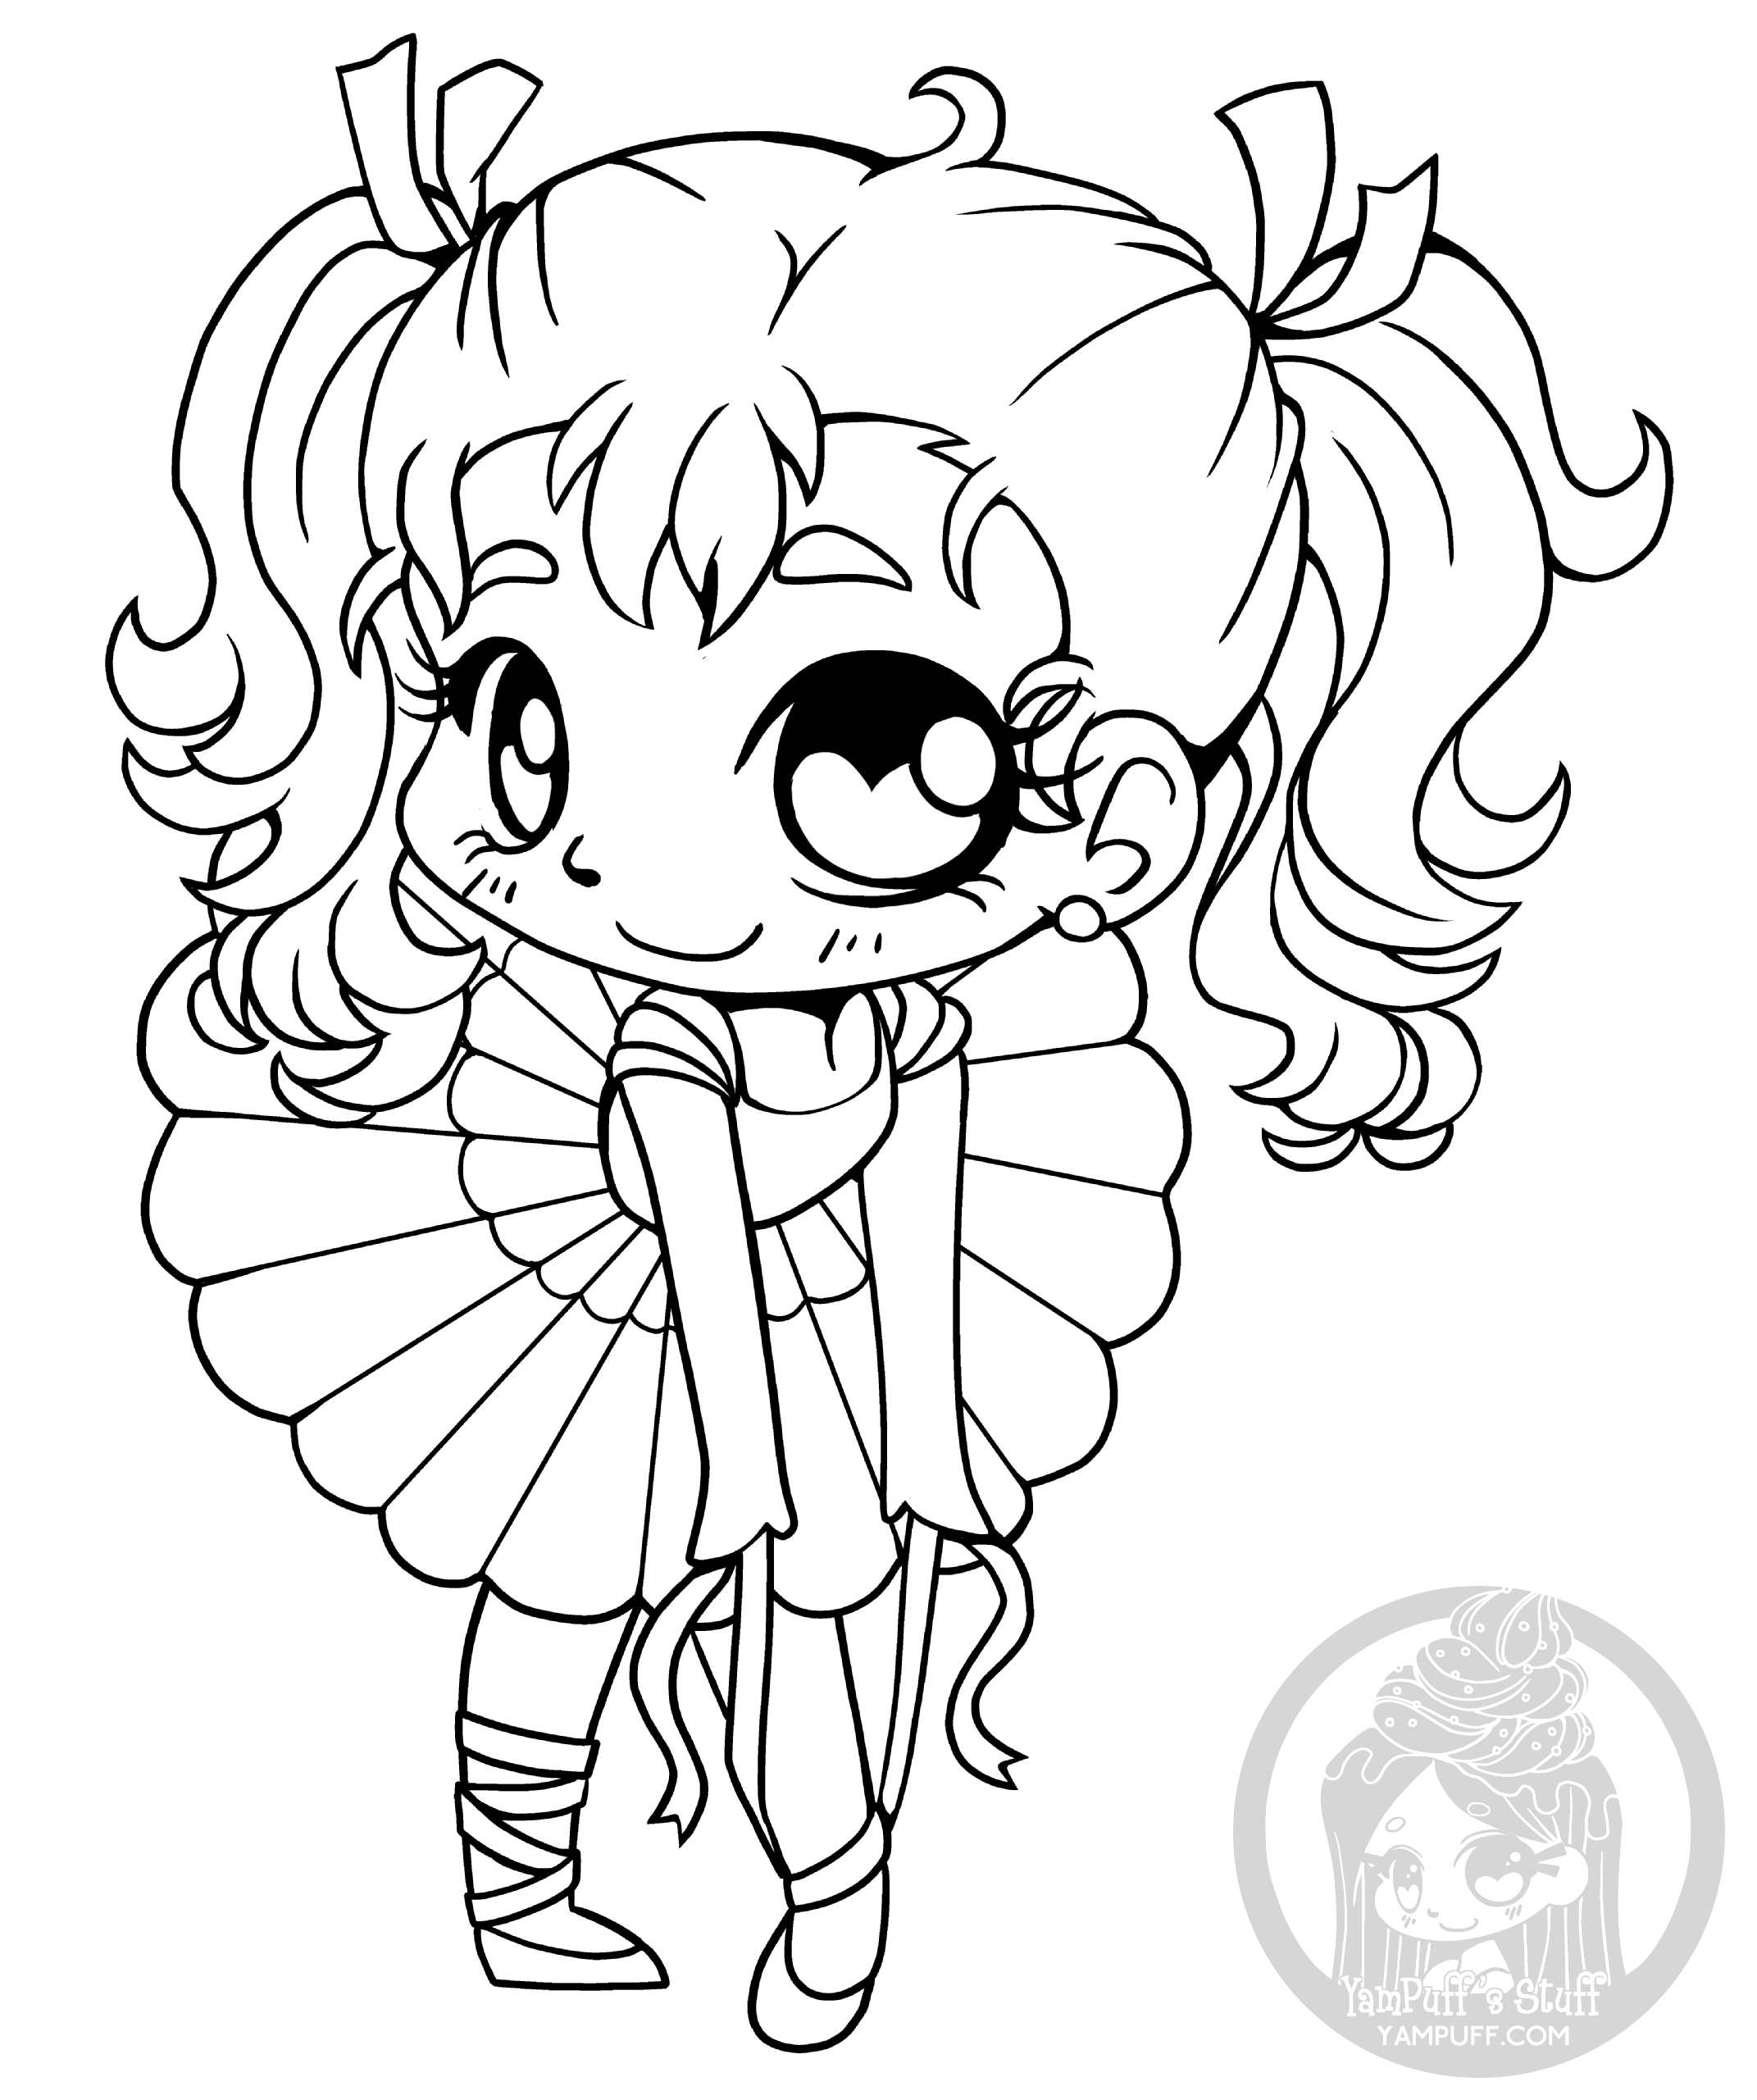 chibi pictures chibis free chibi coloring pages yampuff39s stuff pictures chibi